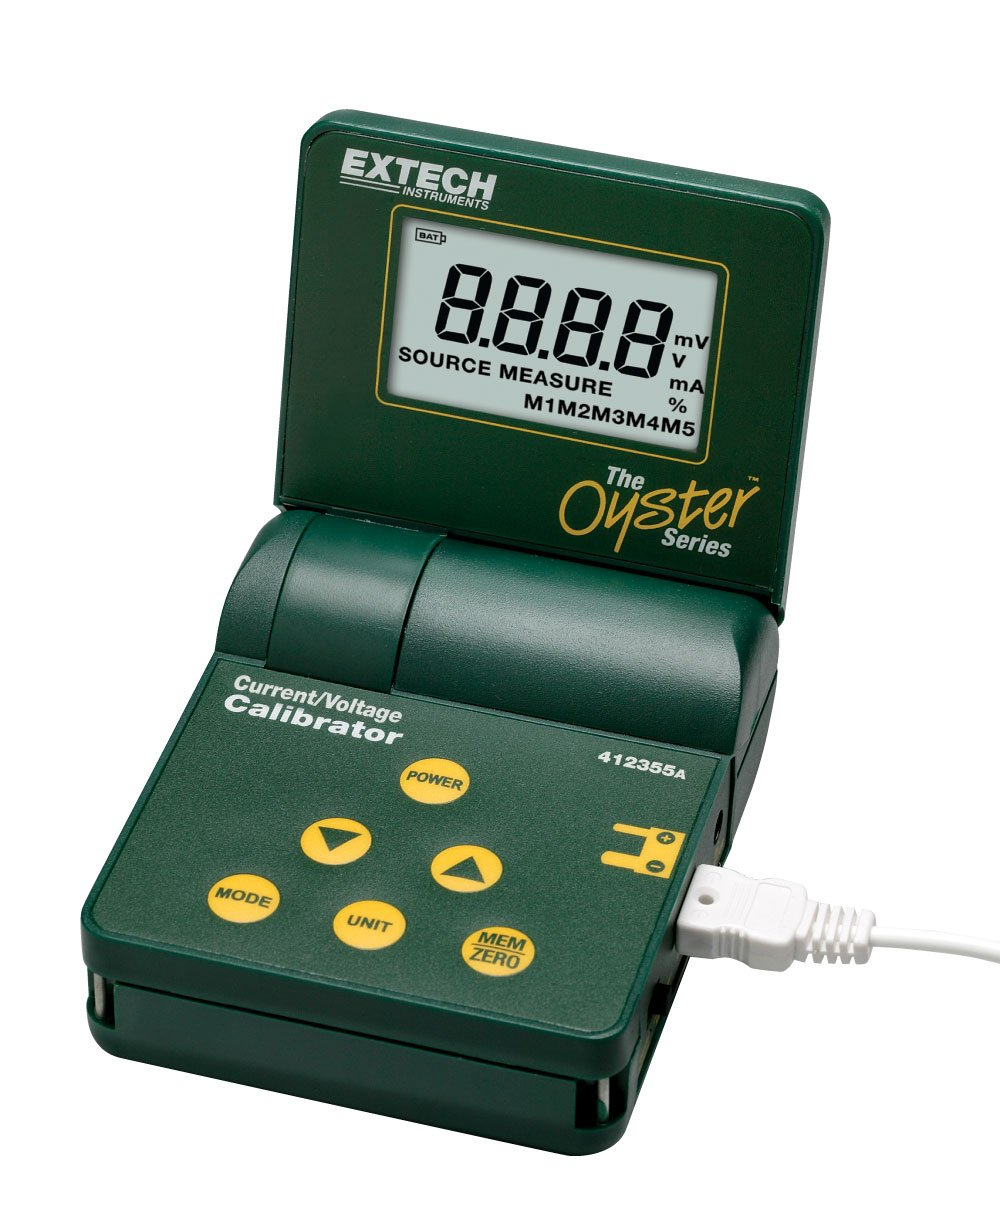 Extech 412355A Current and Voltage Calibrator Meter